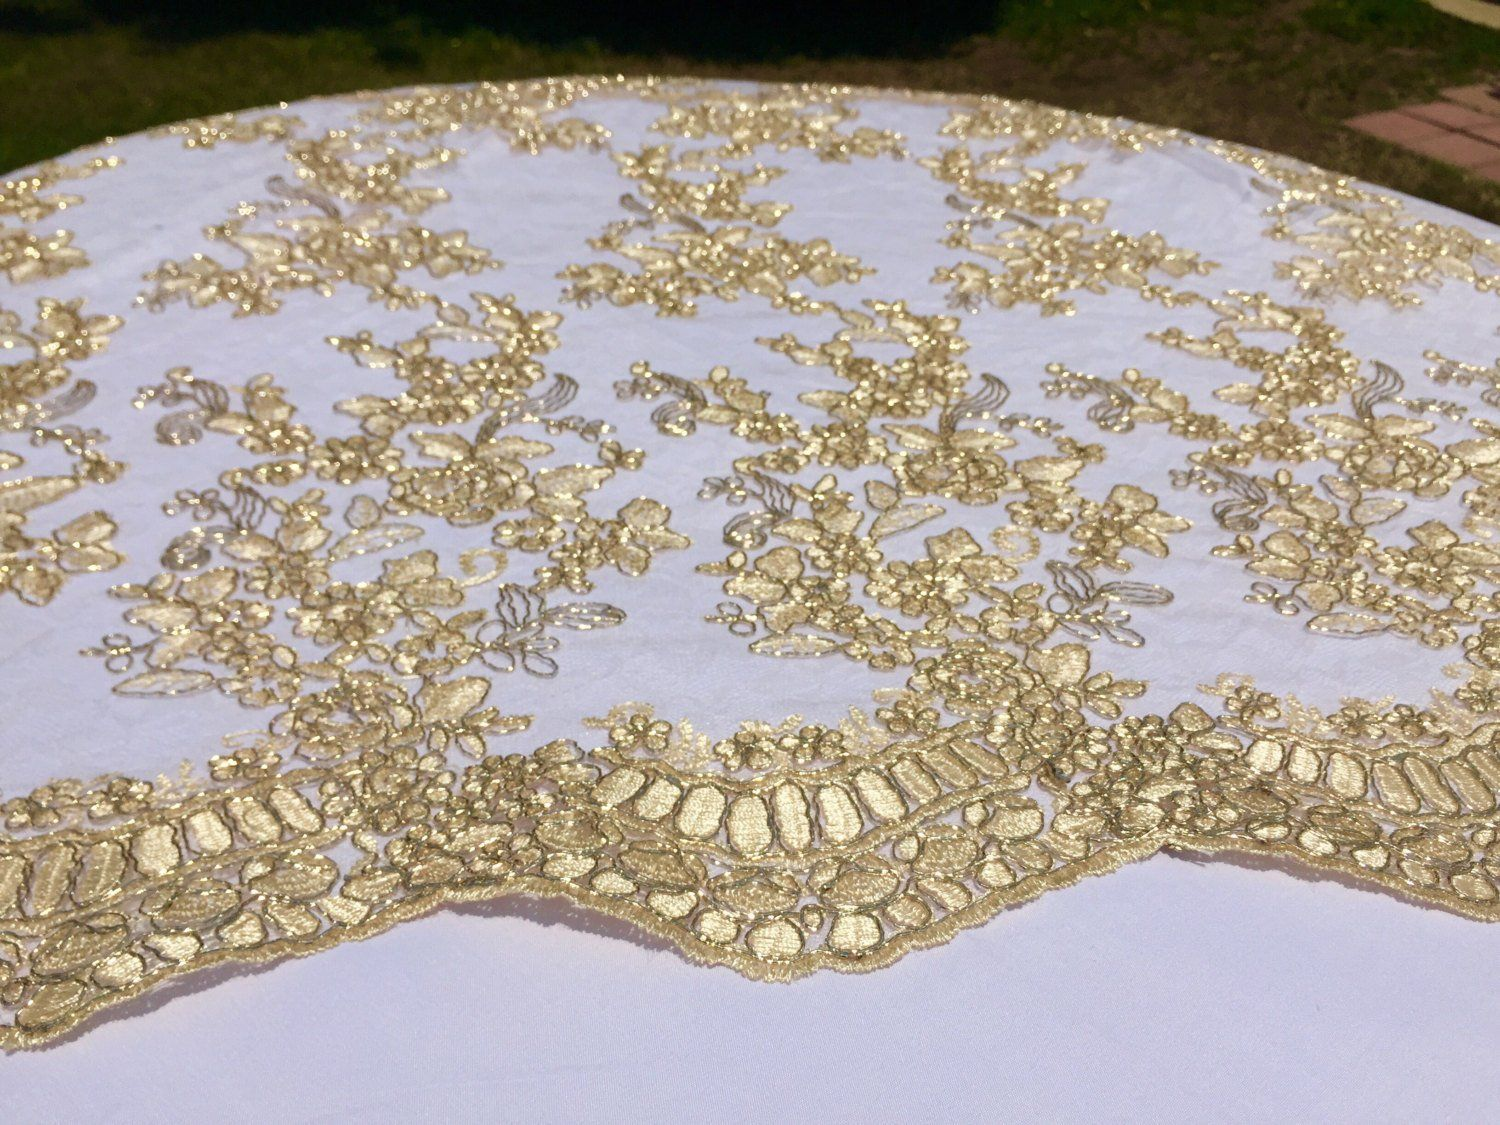 Gold Lace Tablecloth Gold Table Overlay Lace Table Overlay Table Overlay Table Runner Embroidered Gold Tablecloth Table Cloth Gold Tablecloth Table Overlays Gold Table